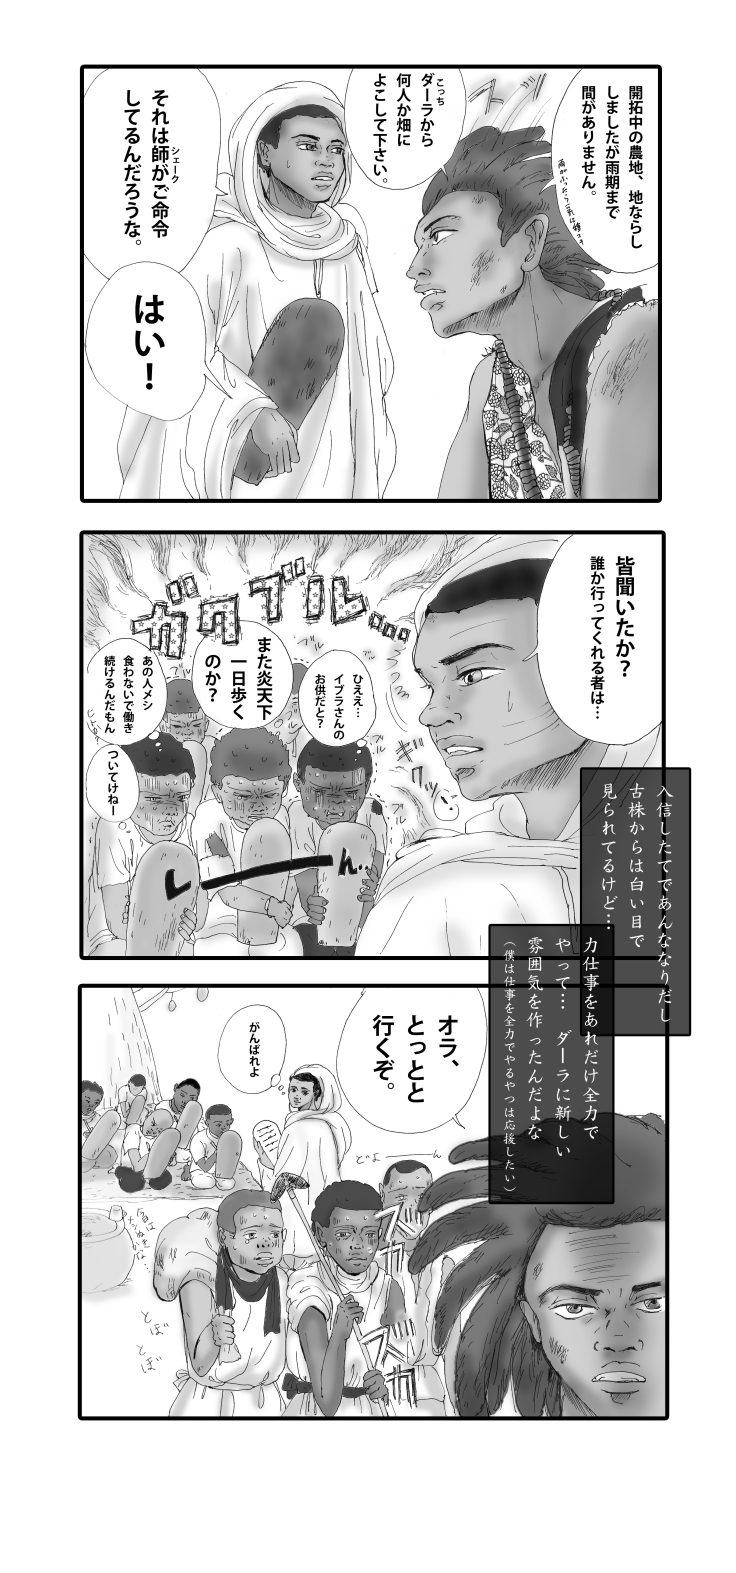 JP-PAGE.2